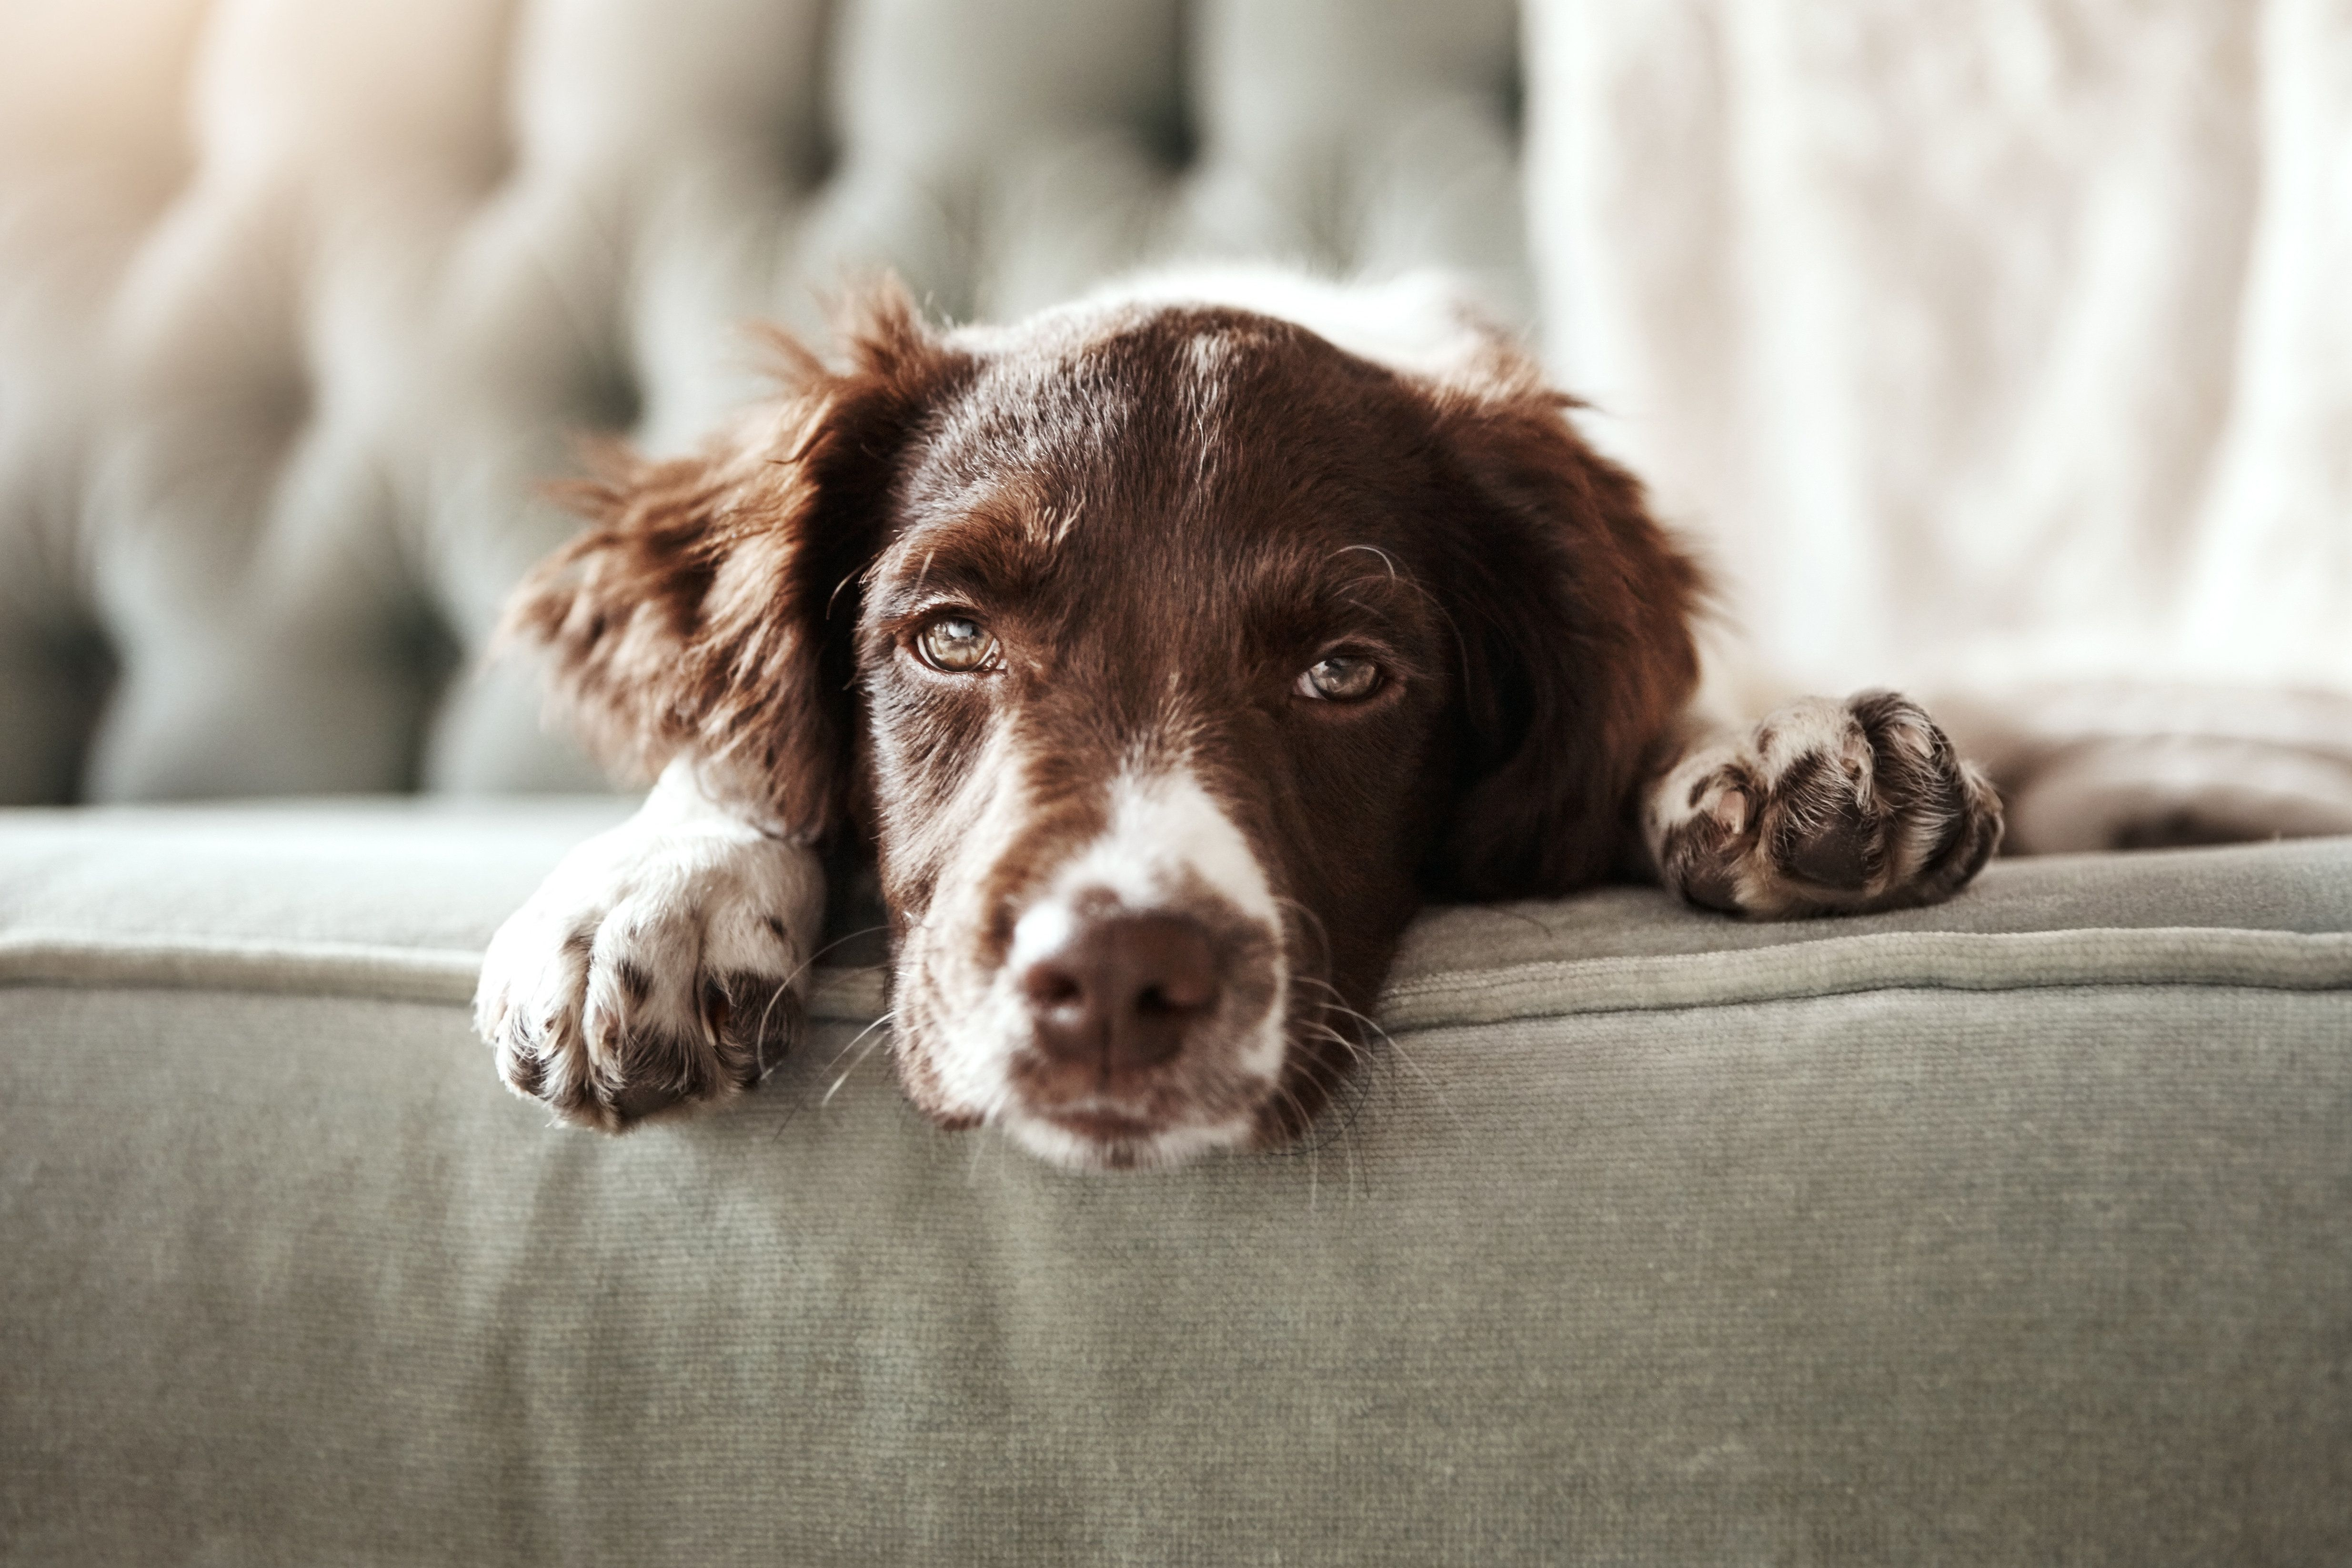 Please Don't Give Up Your Pet Over The Fear Of Dog-Lick